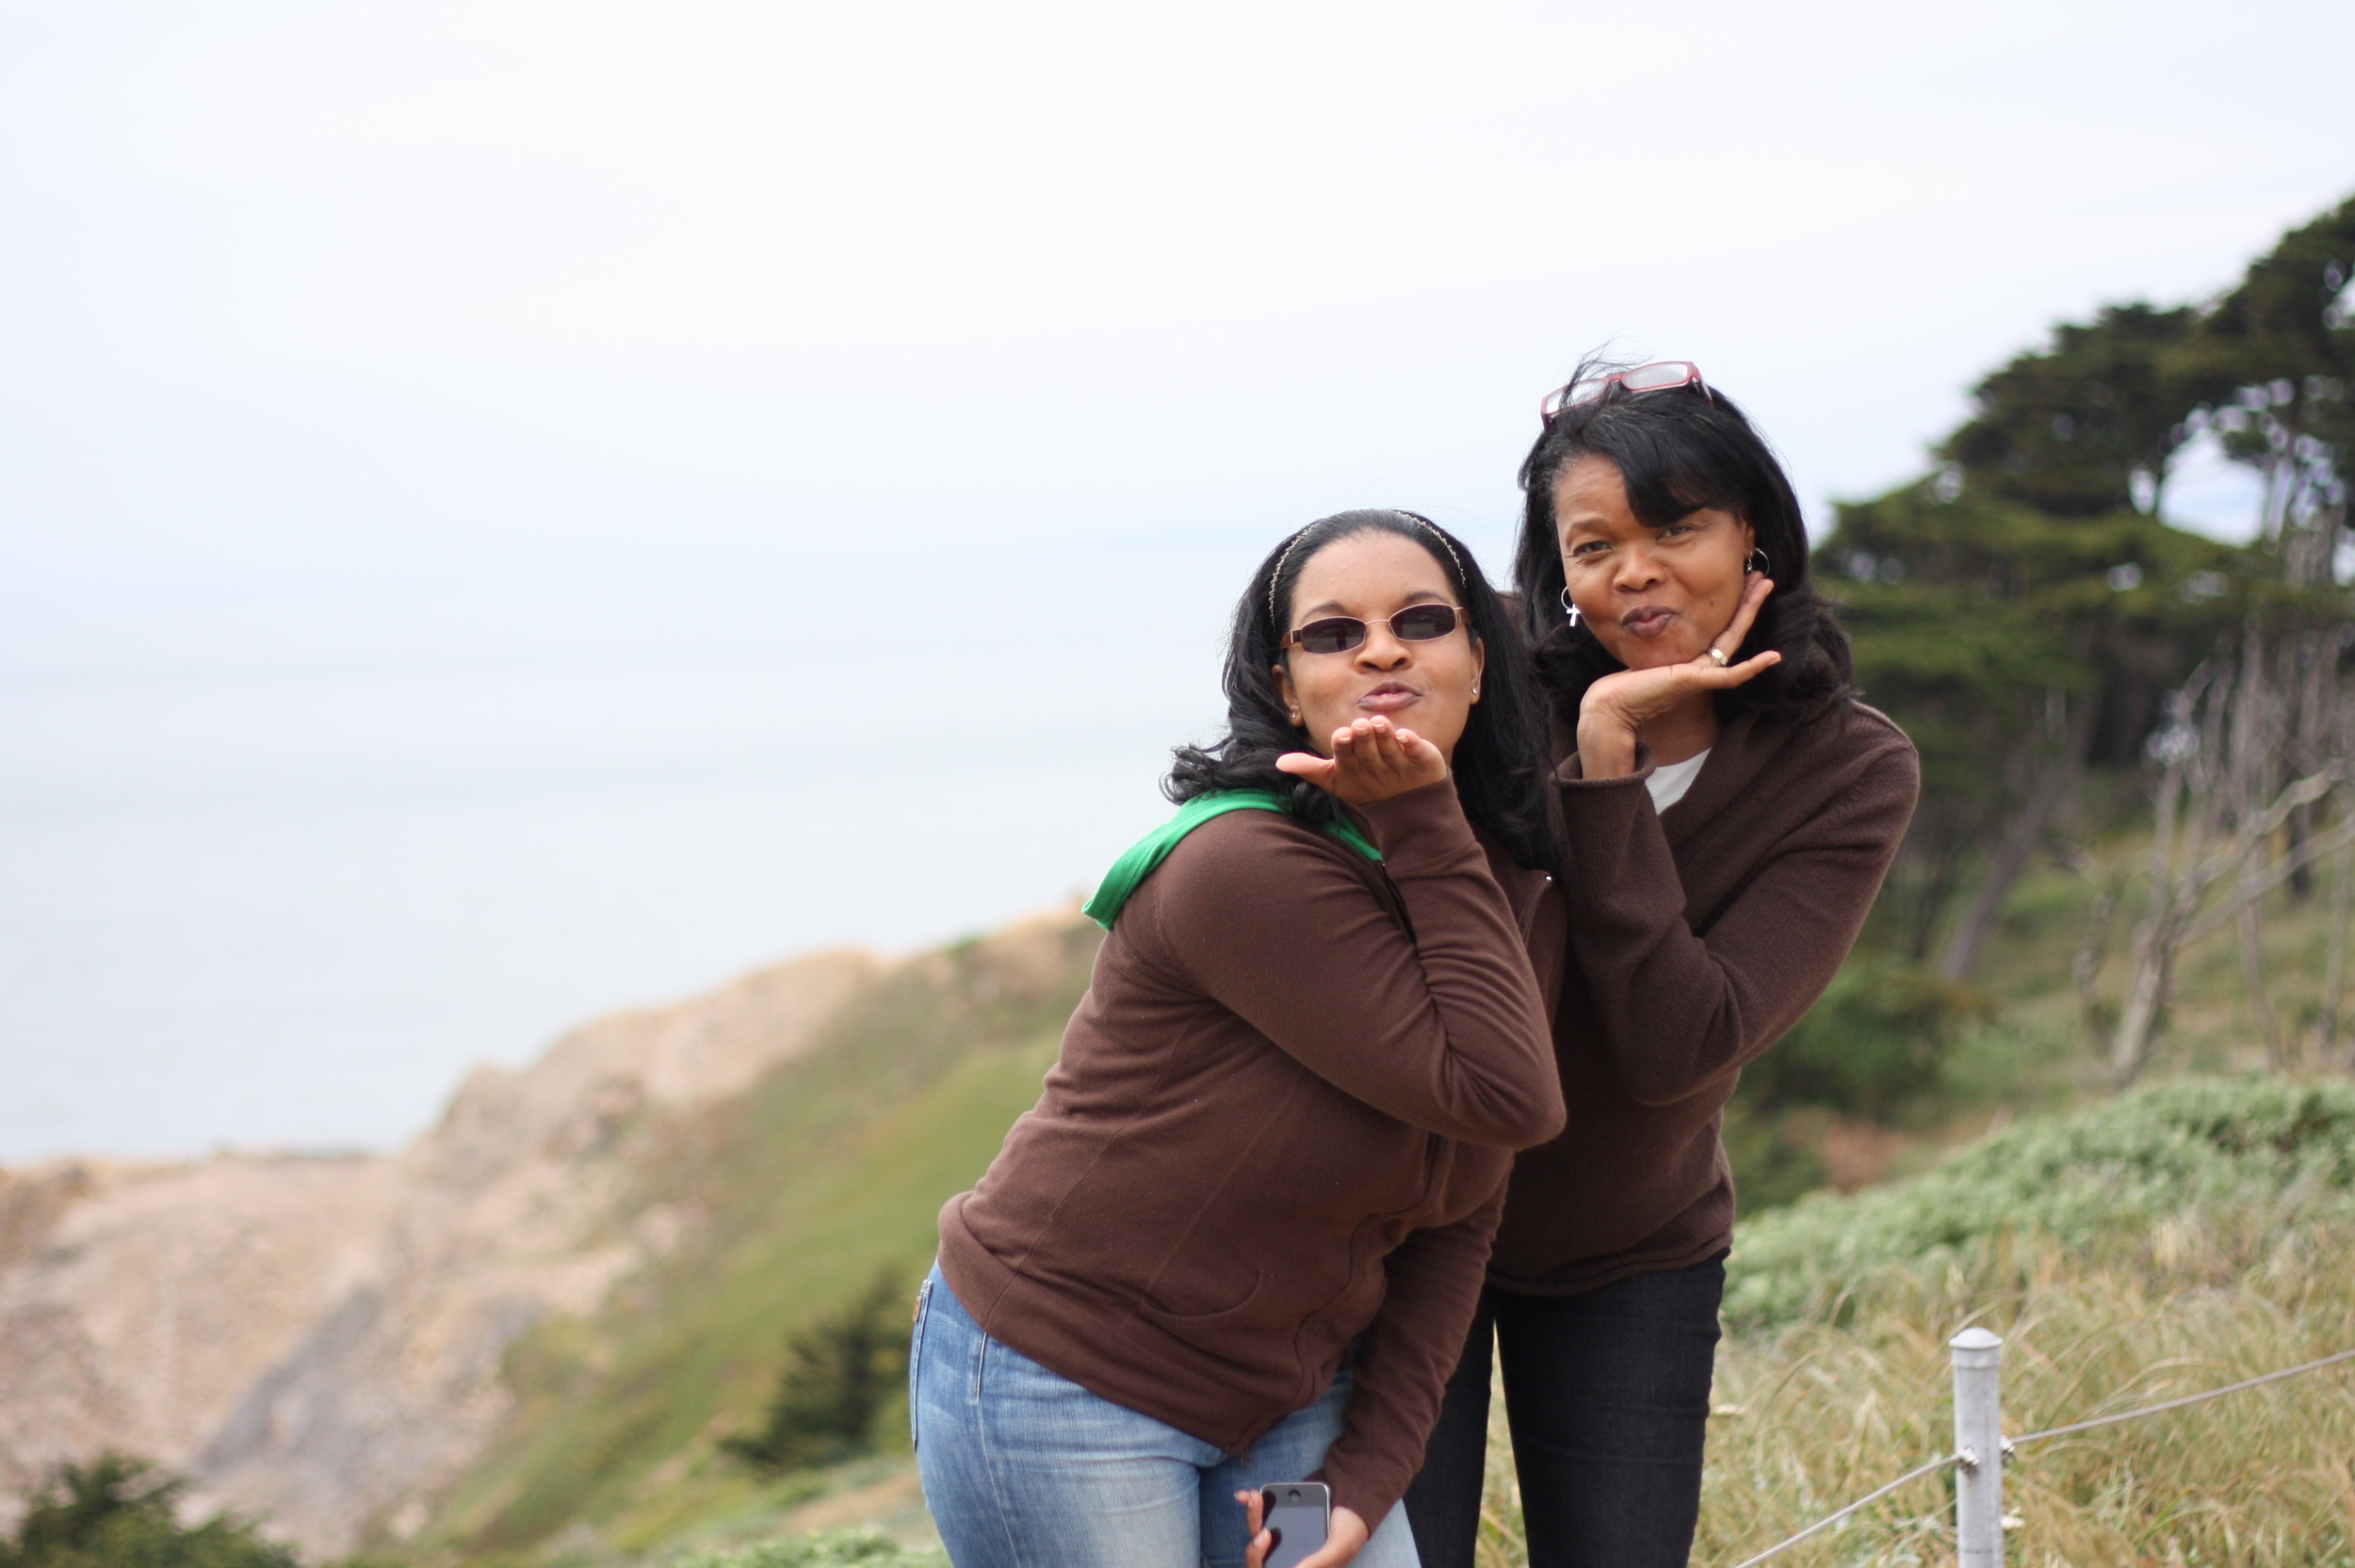 My mom & I being silly at San Francisco's Land's End Lookout above Sutro Baths